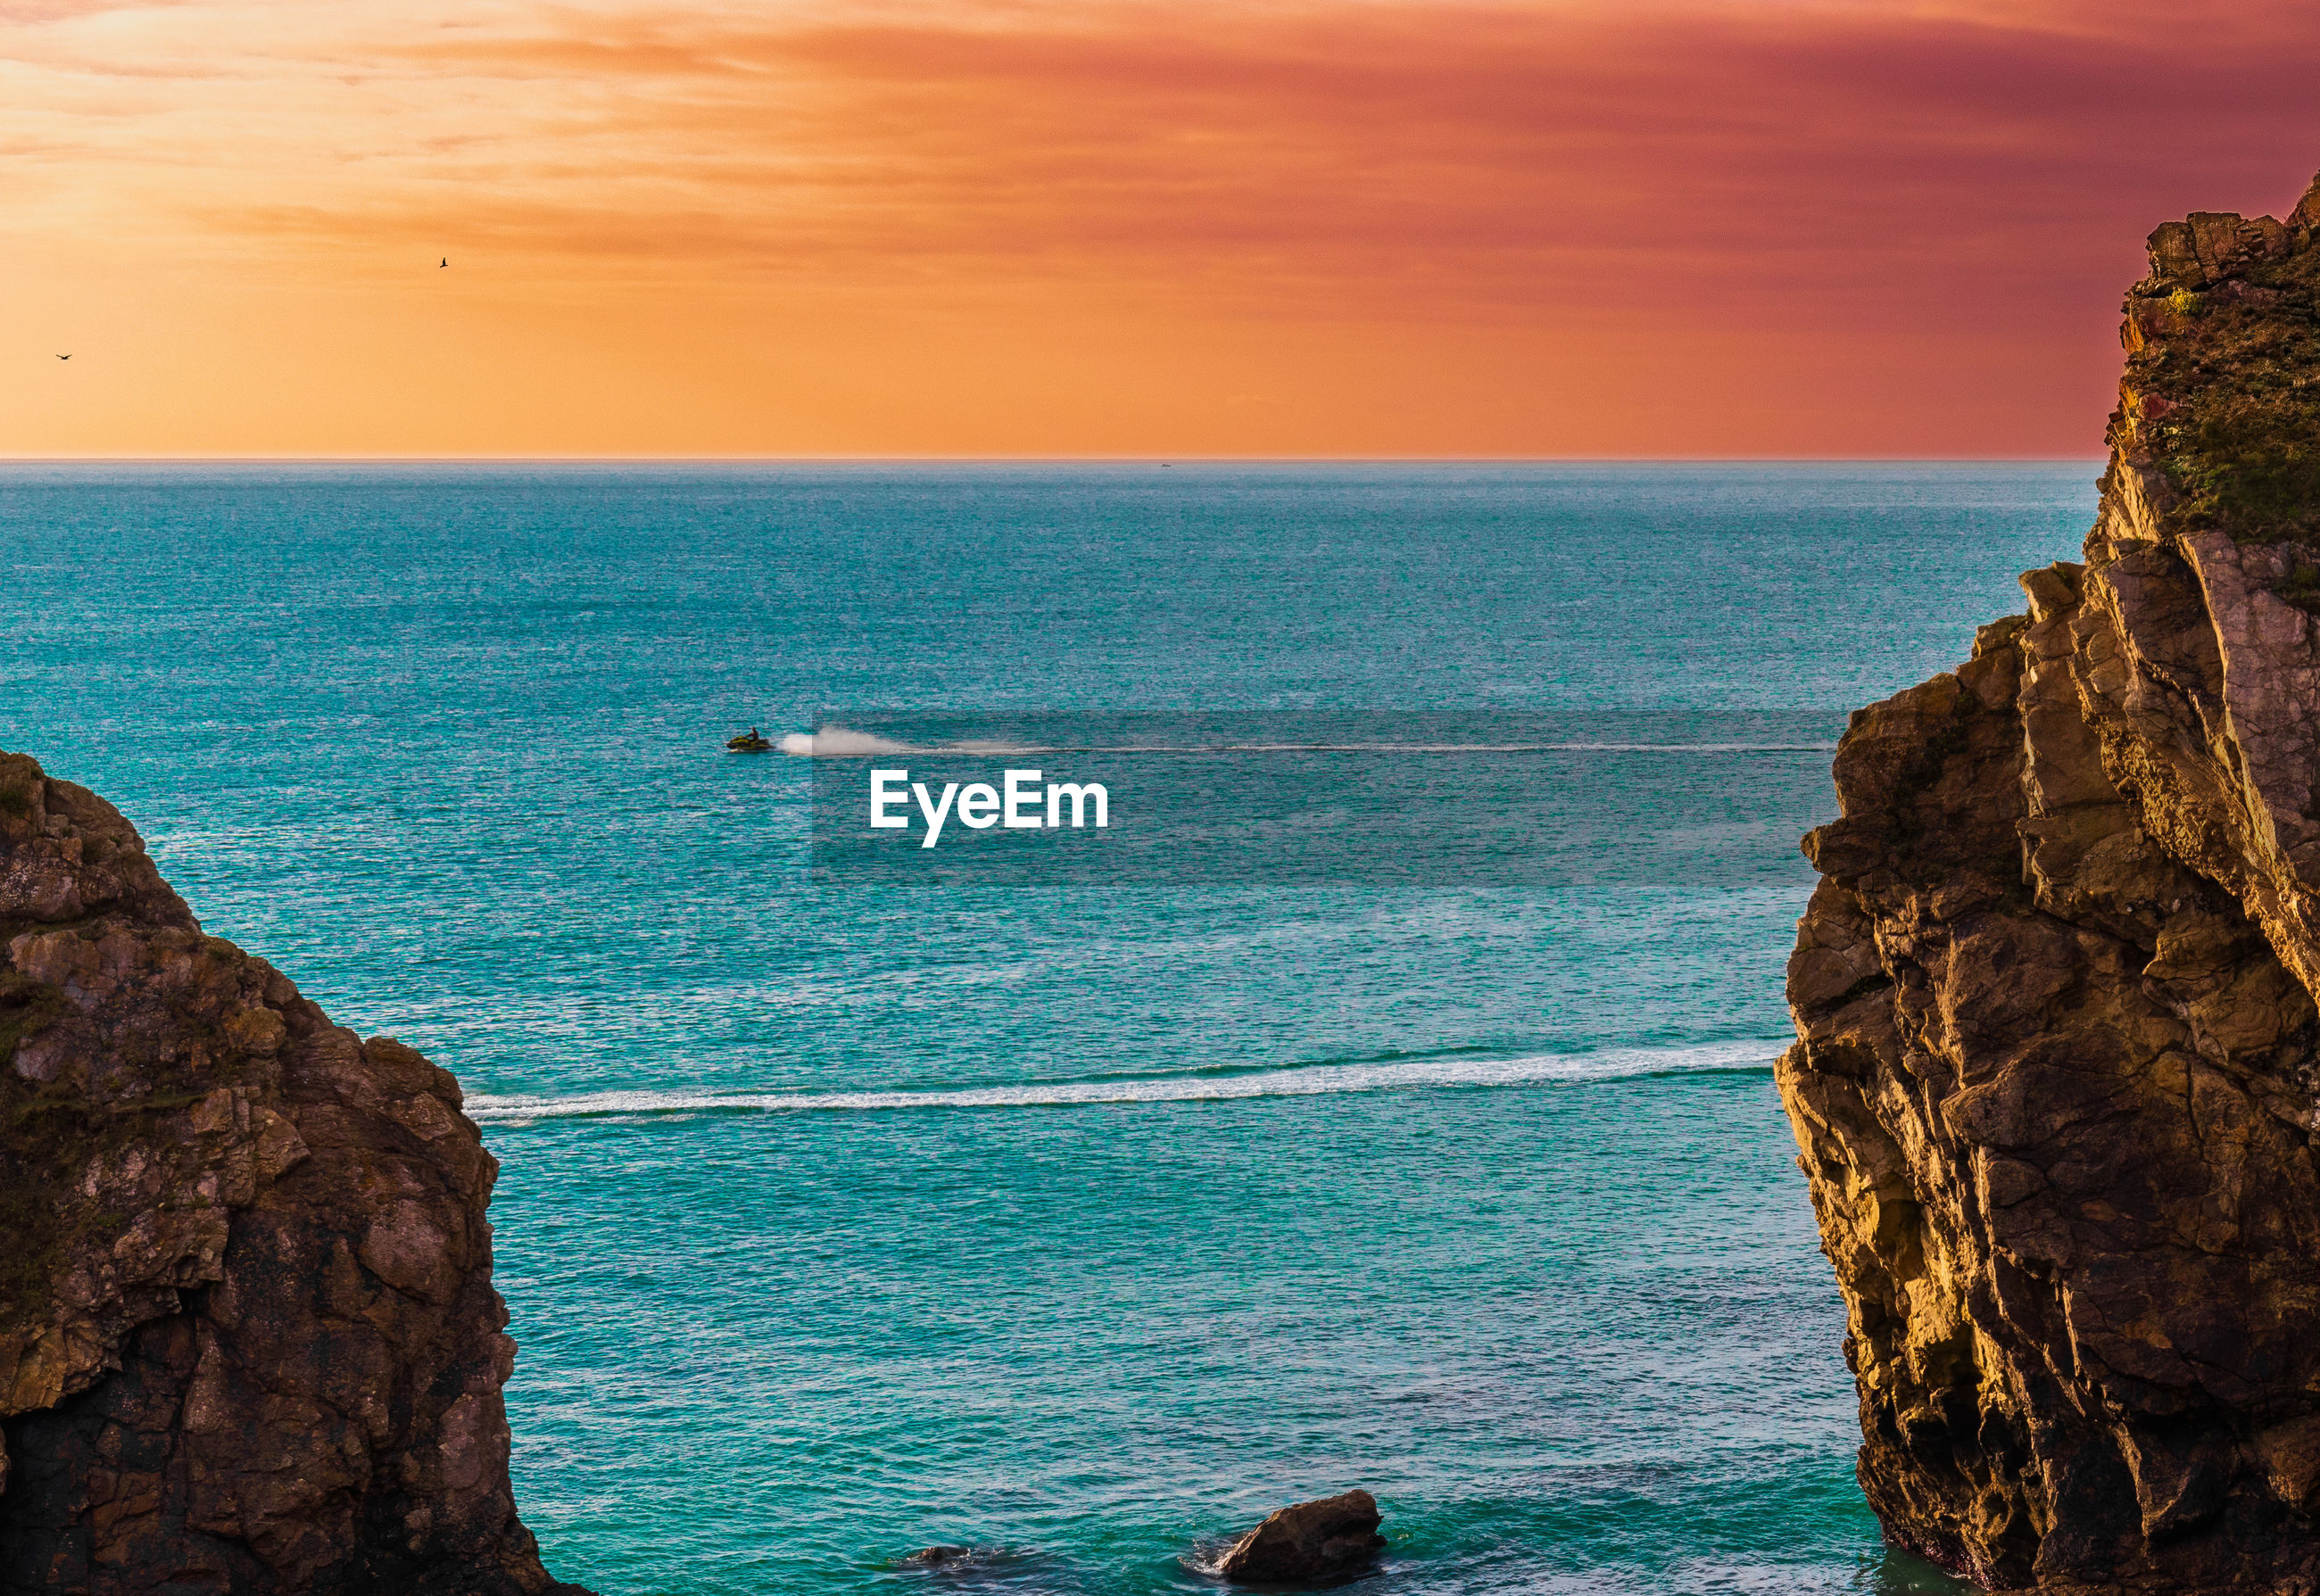 Scenic view of sea against sky during sunset, teal and orange